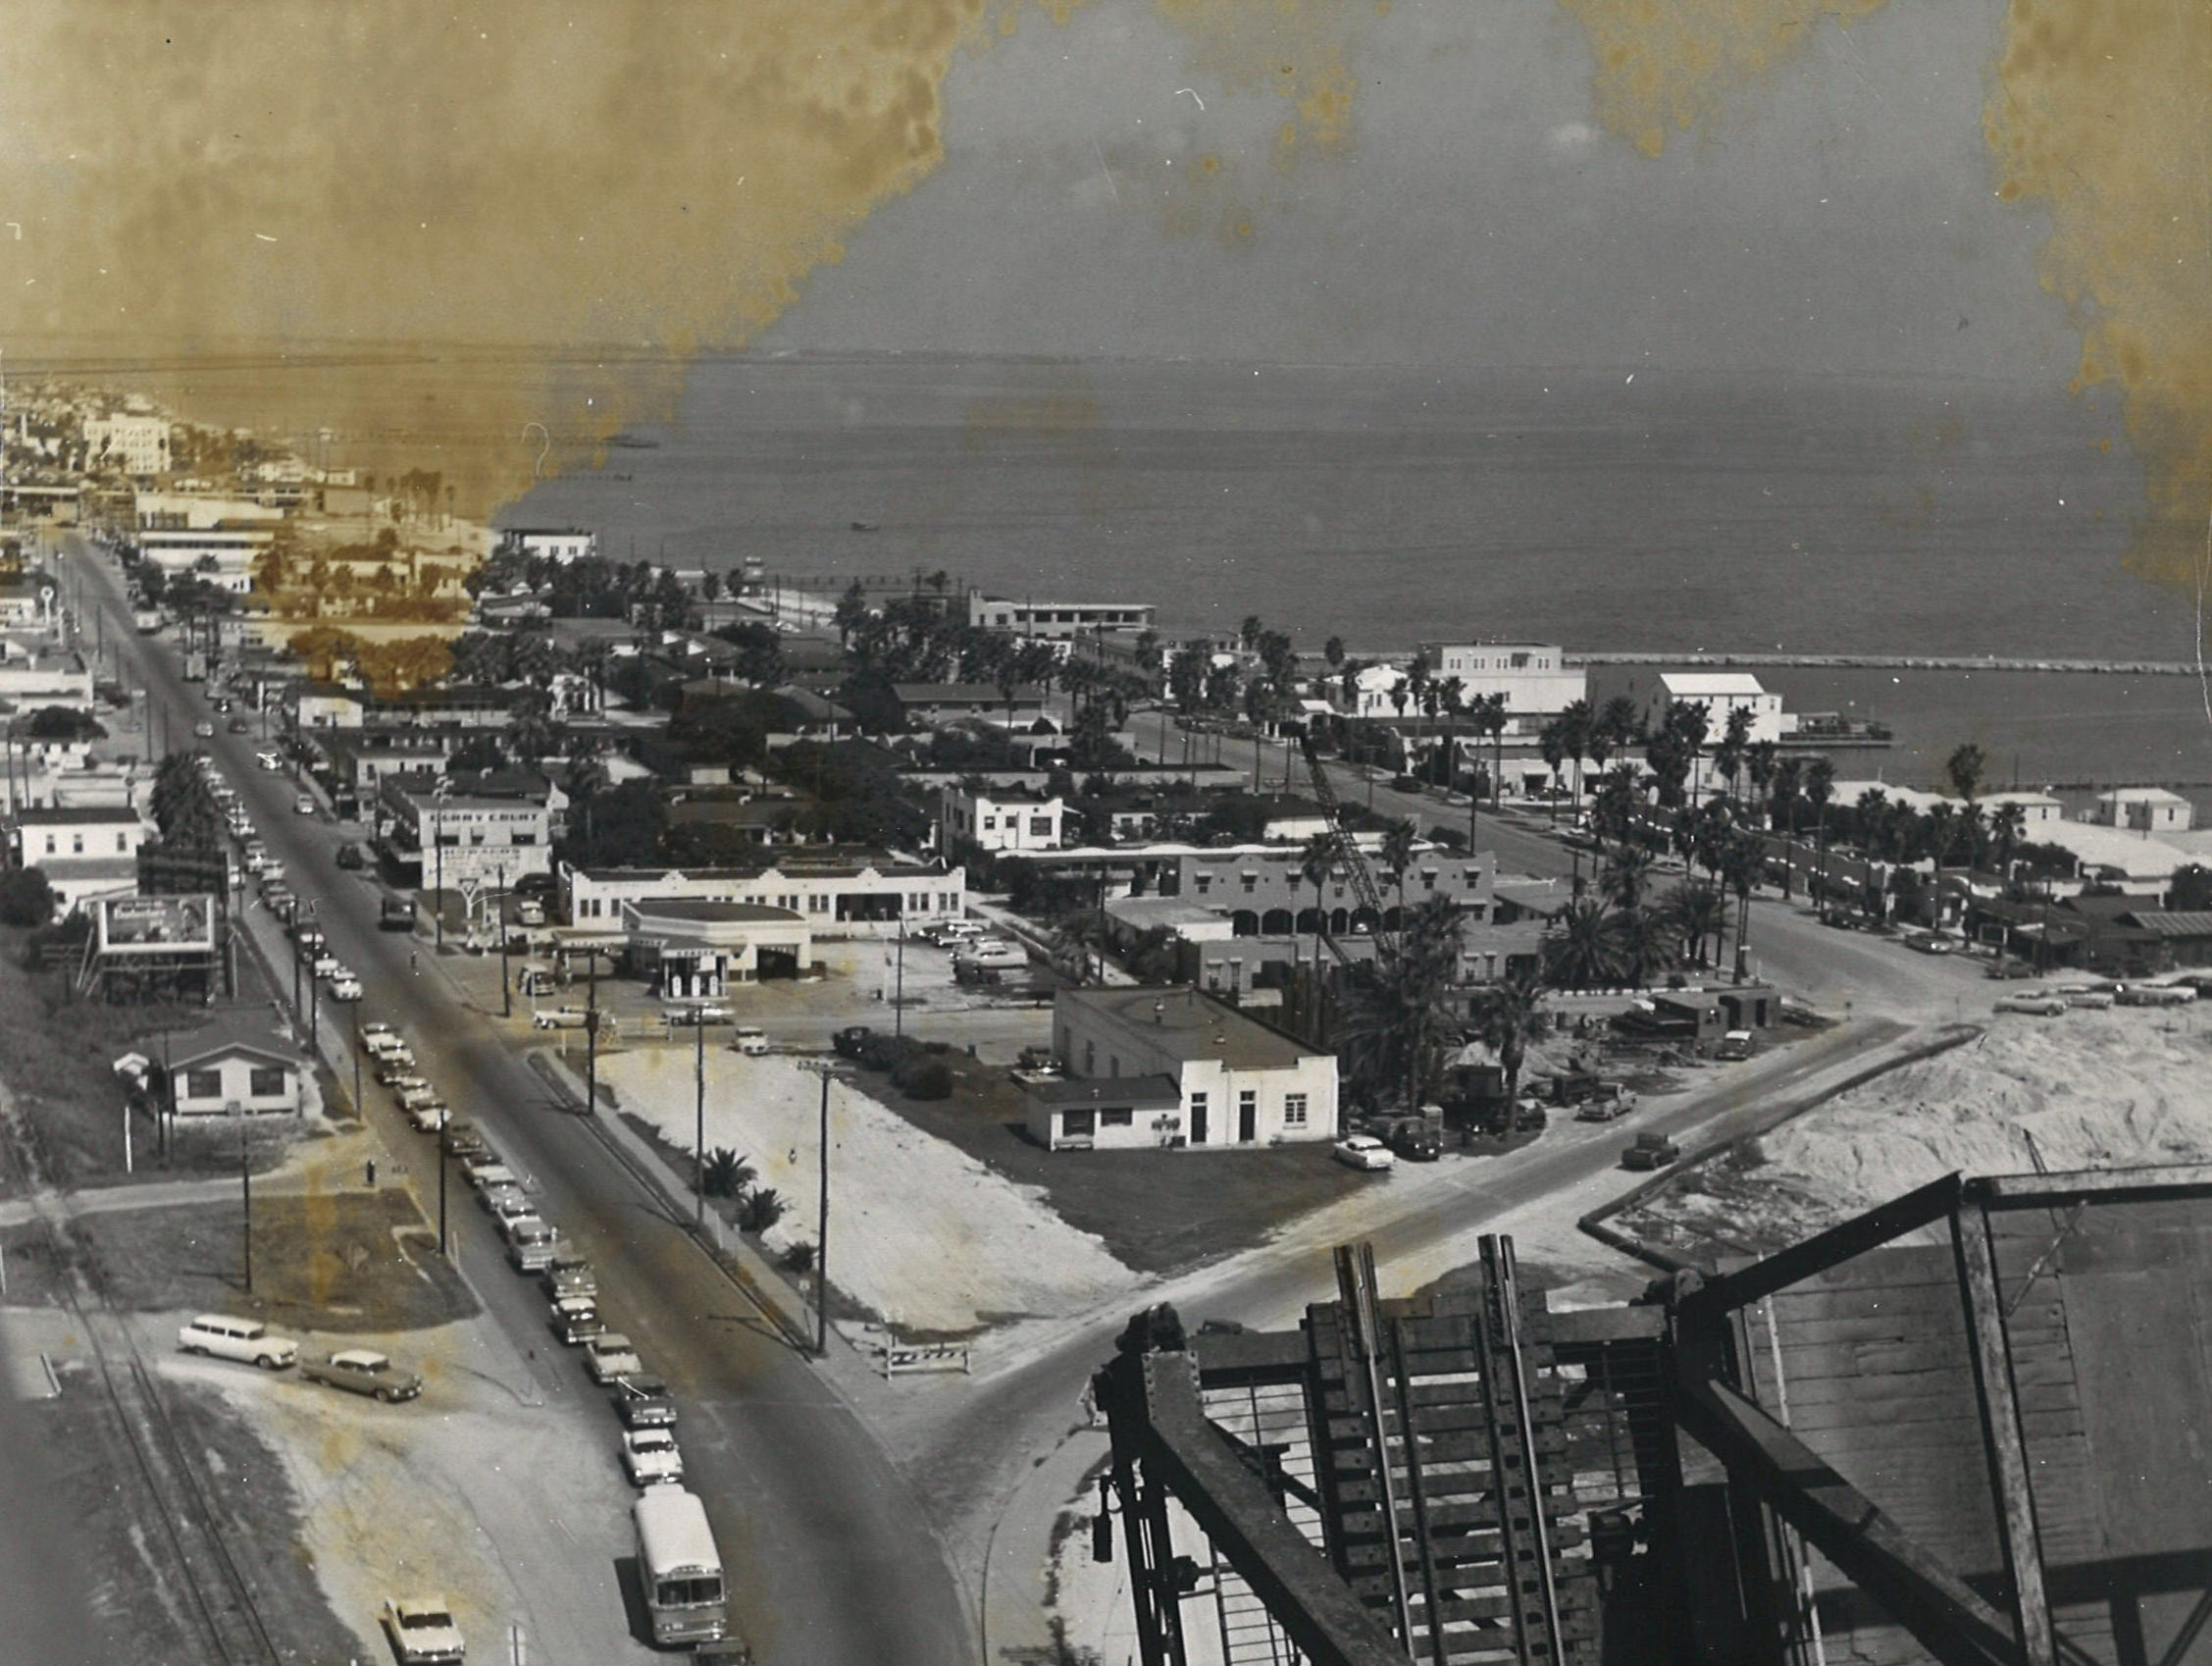 The bascule bridge was still in operation when this photo of Corpus Christi's North Beach was taken in the 1950s.